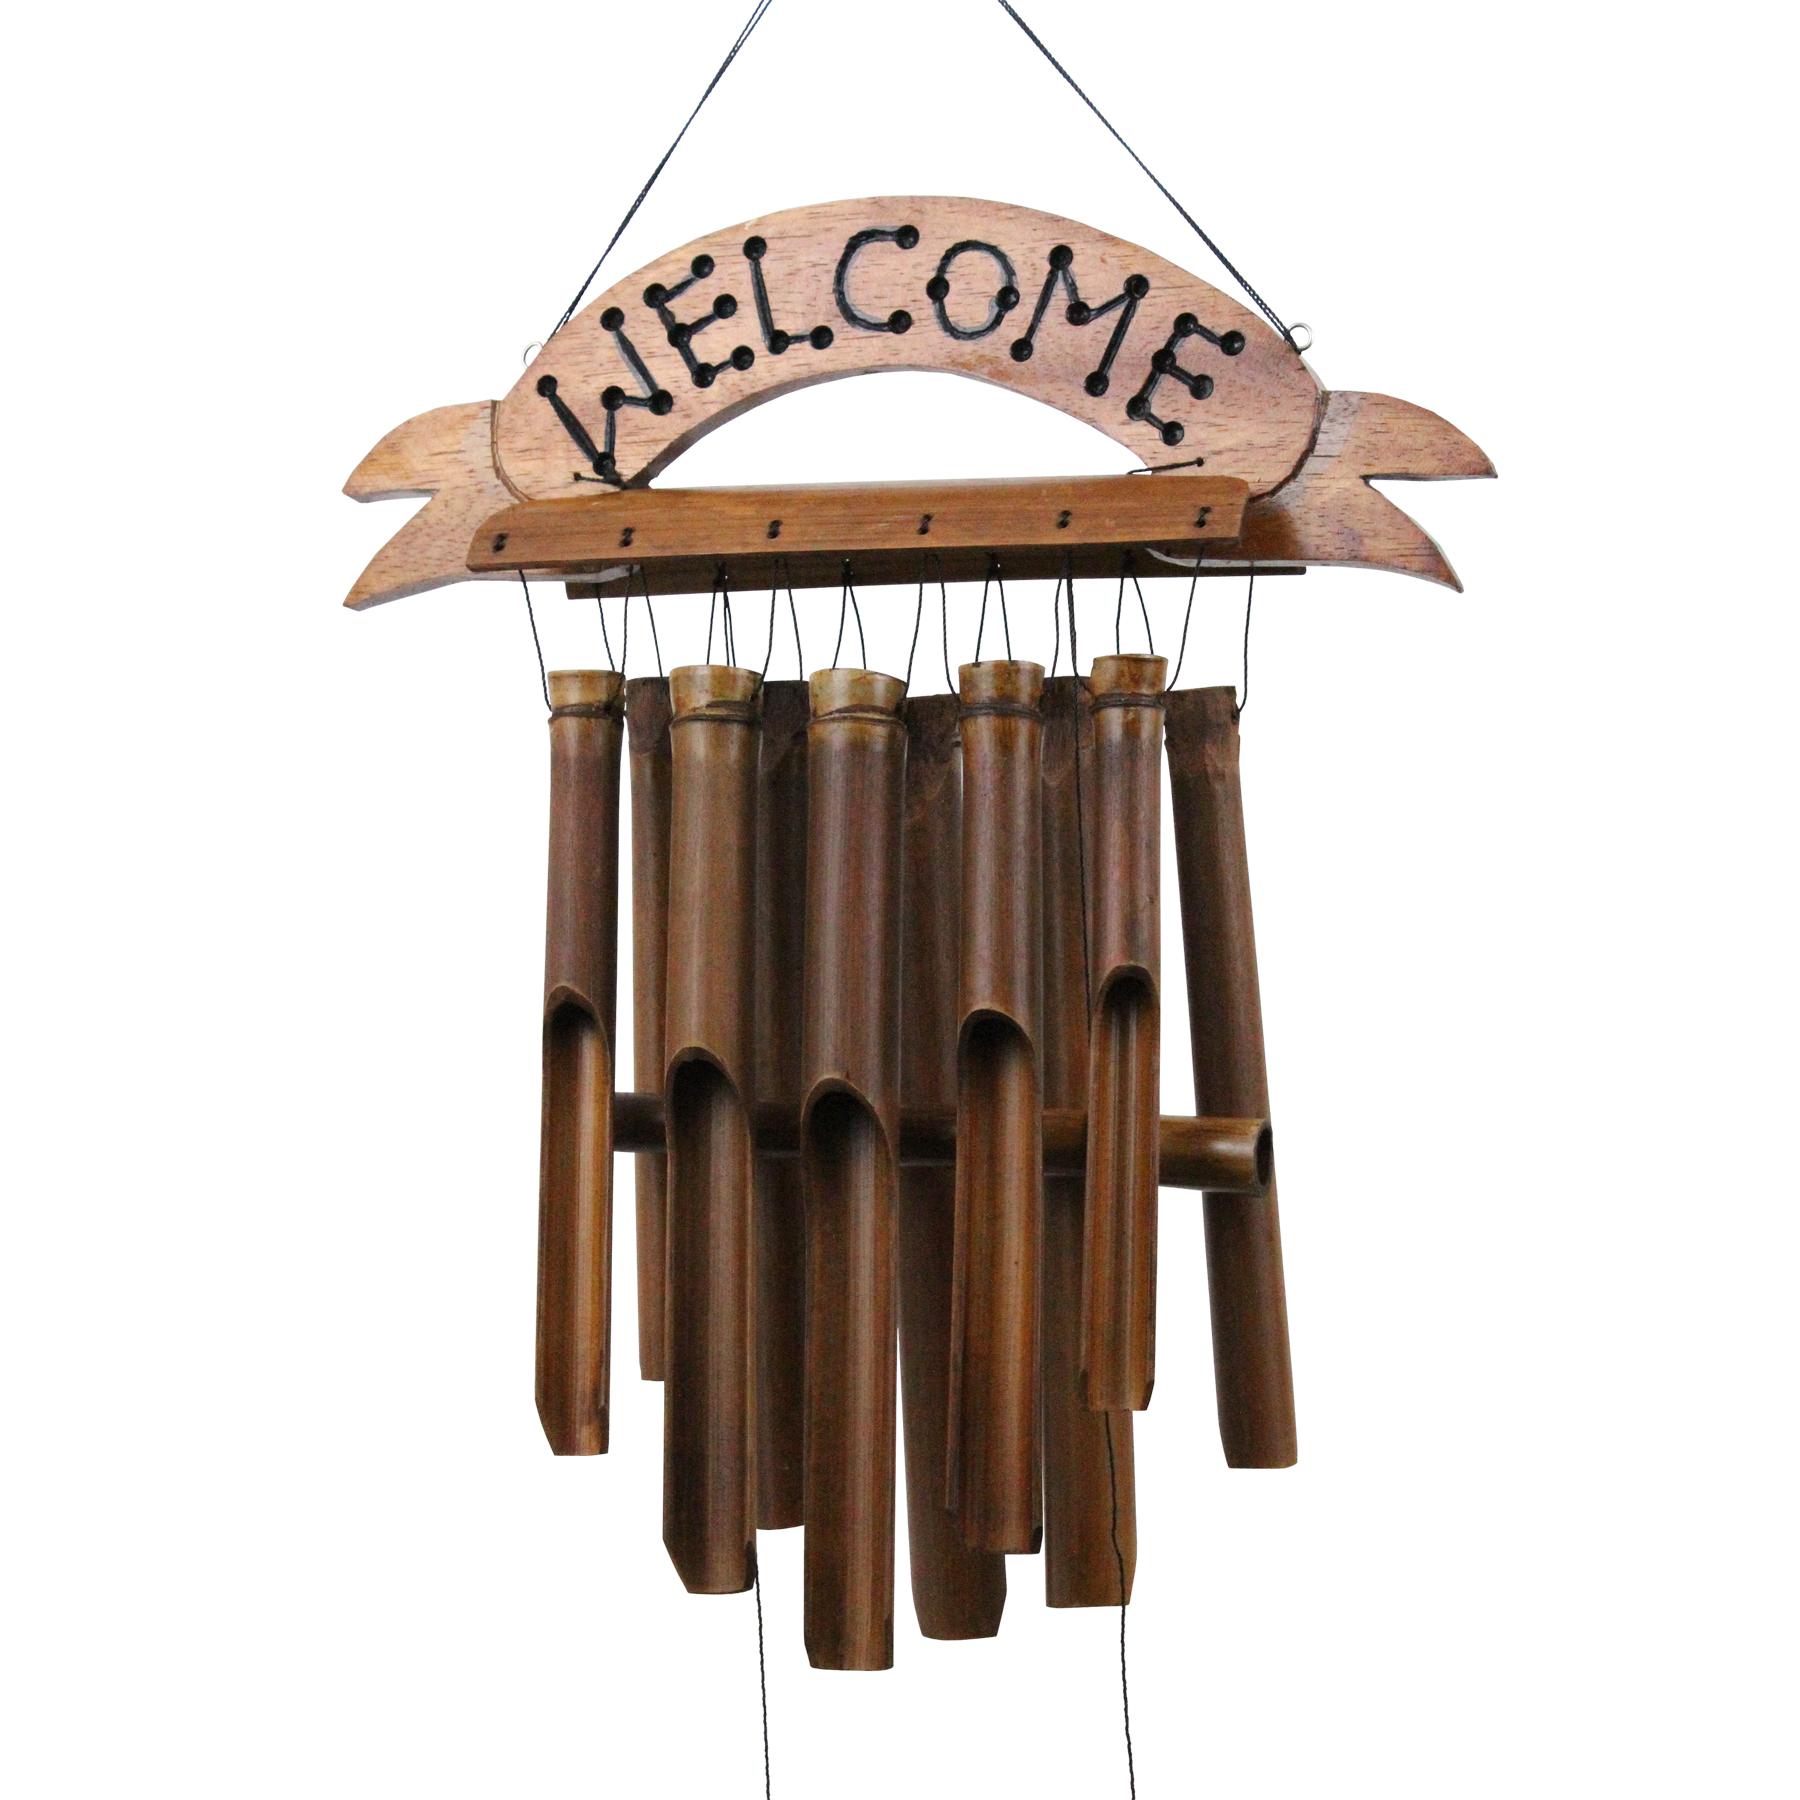 190W - Welcome Bamboo Wind Chime